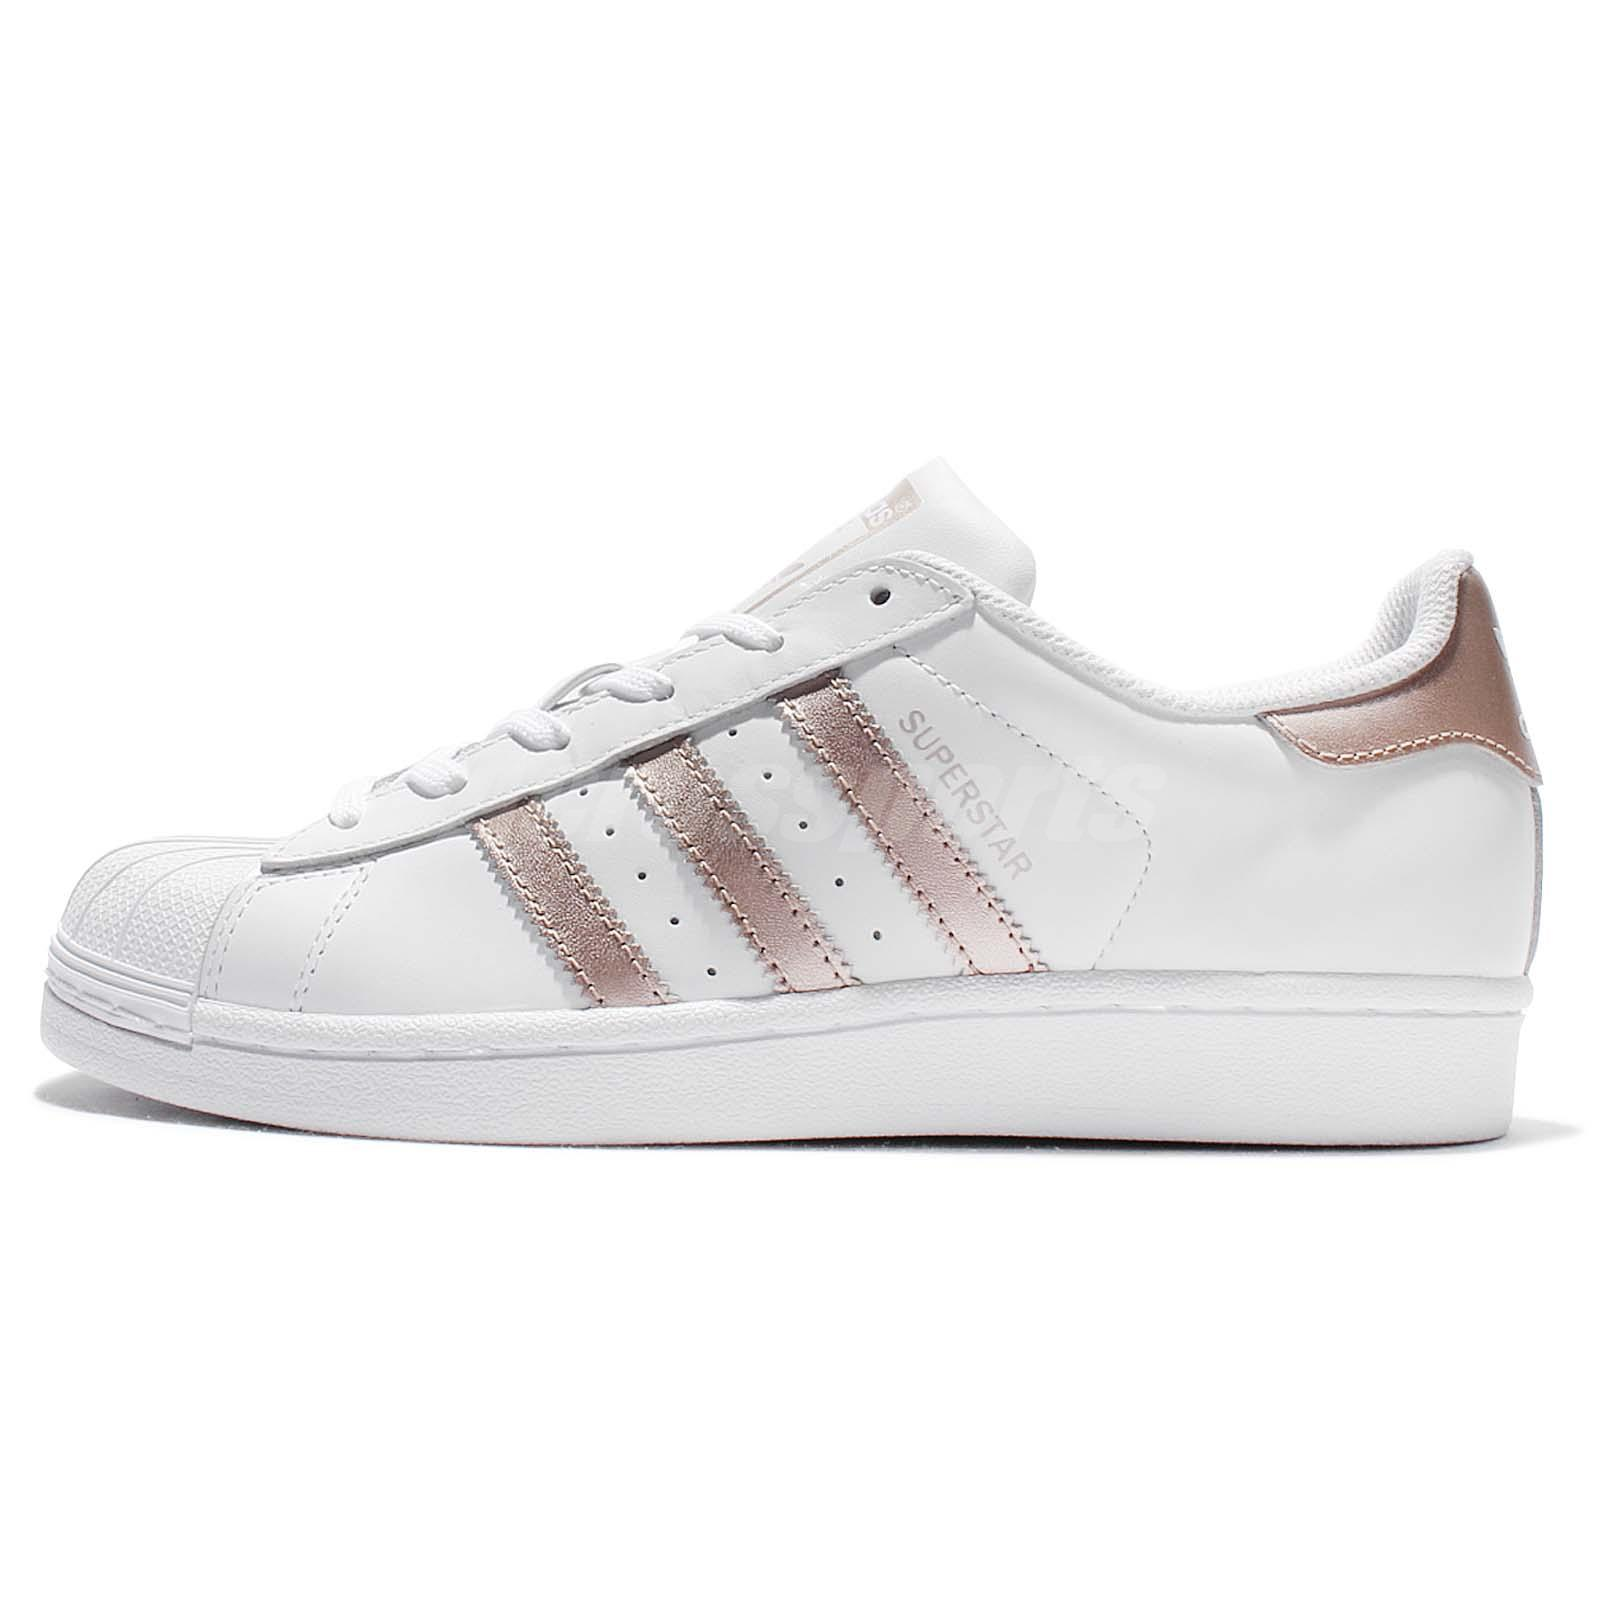 adidas superstar original rose gold women